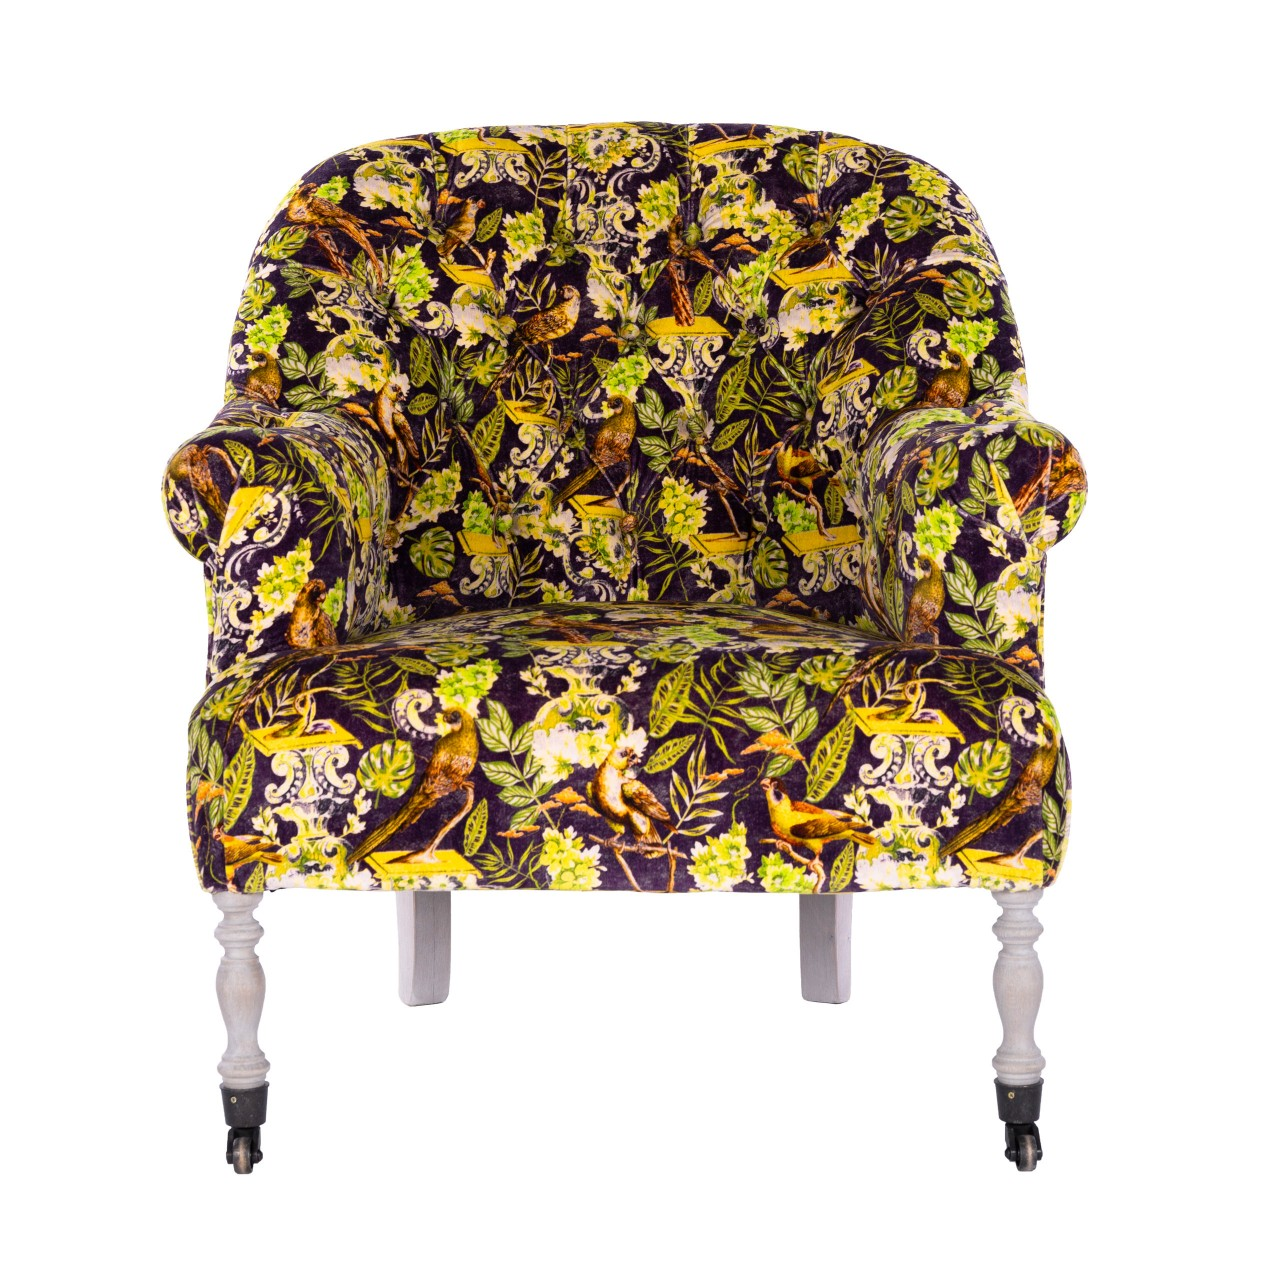 ST GERMAINE Tufted Chair - LA VOLIERE Velvet